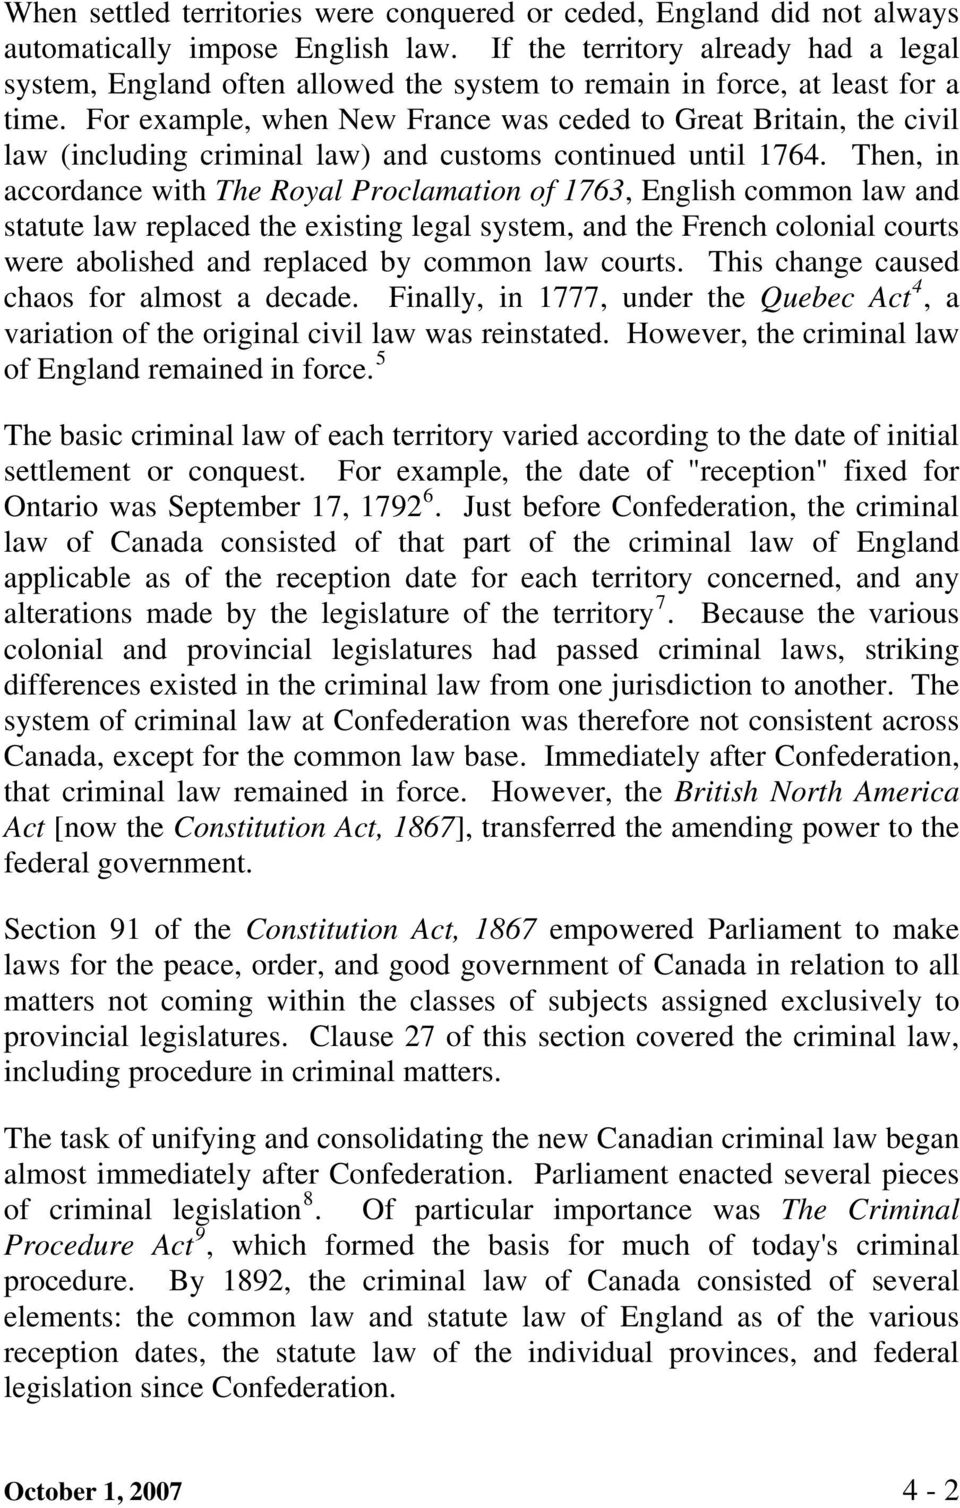 For example, when New France was ceded to Great Britain, the civil law (including criminal law) and customs continued until 1764.